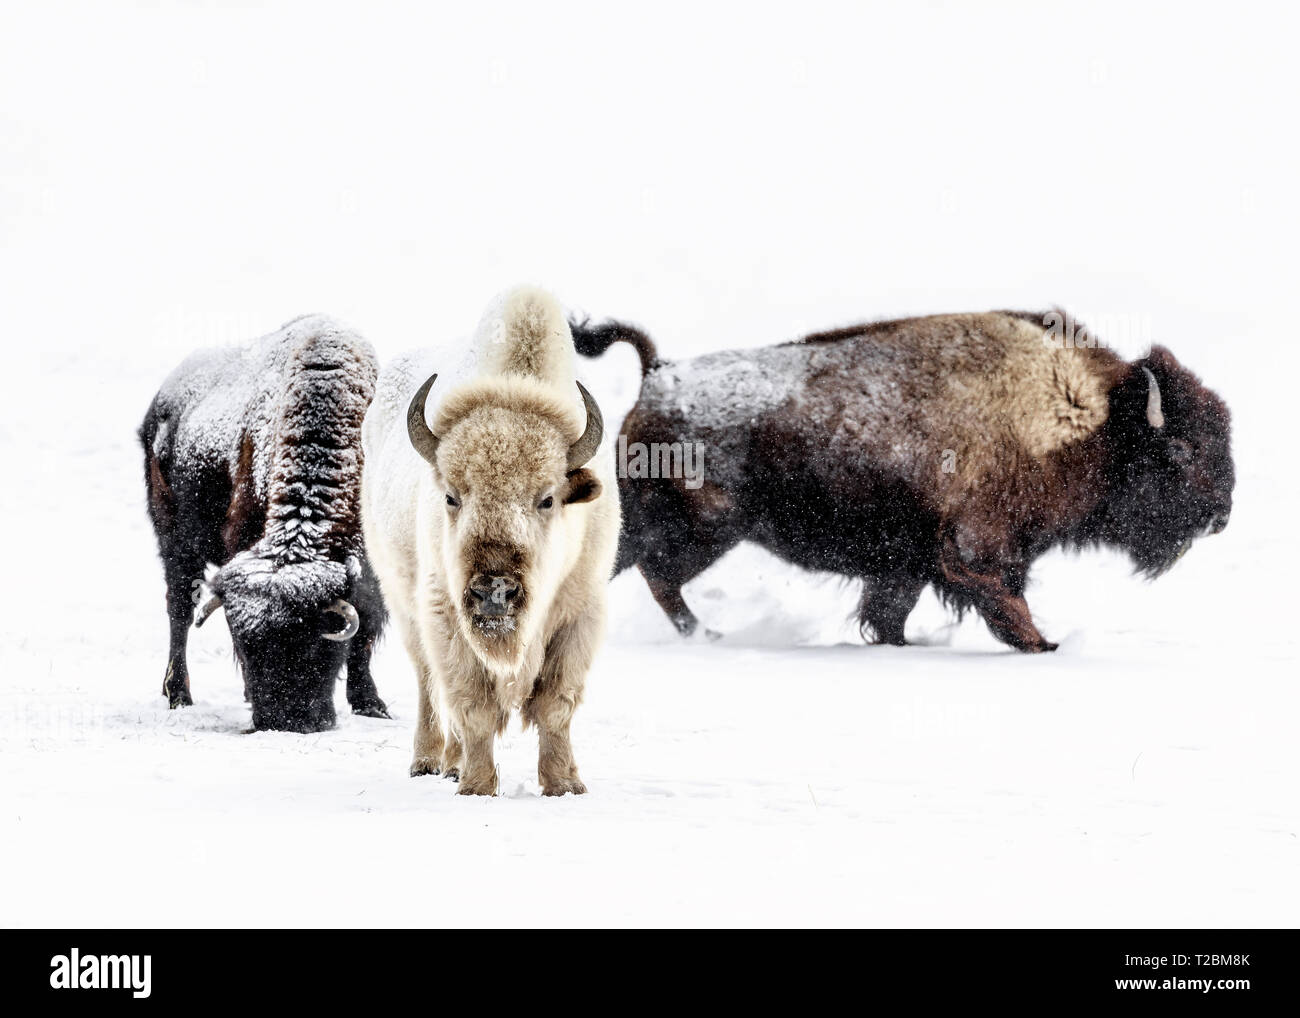 A sacred White Bison or Buffalo in winter, Manitoba, Canada. - Stock Image